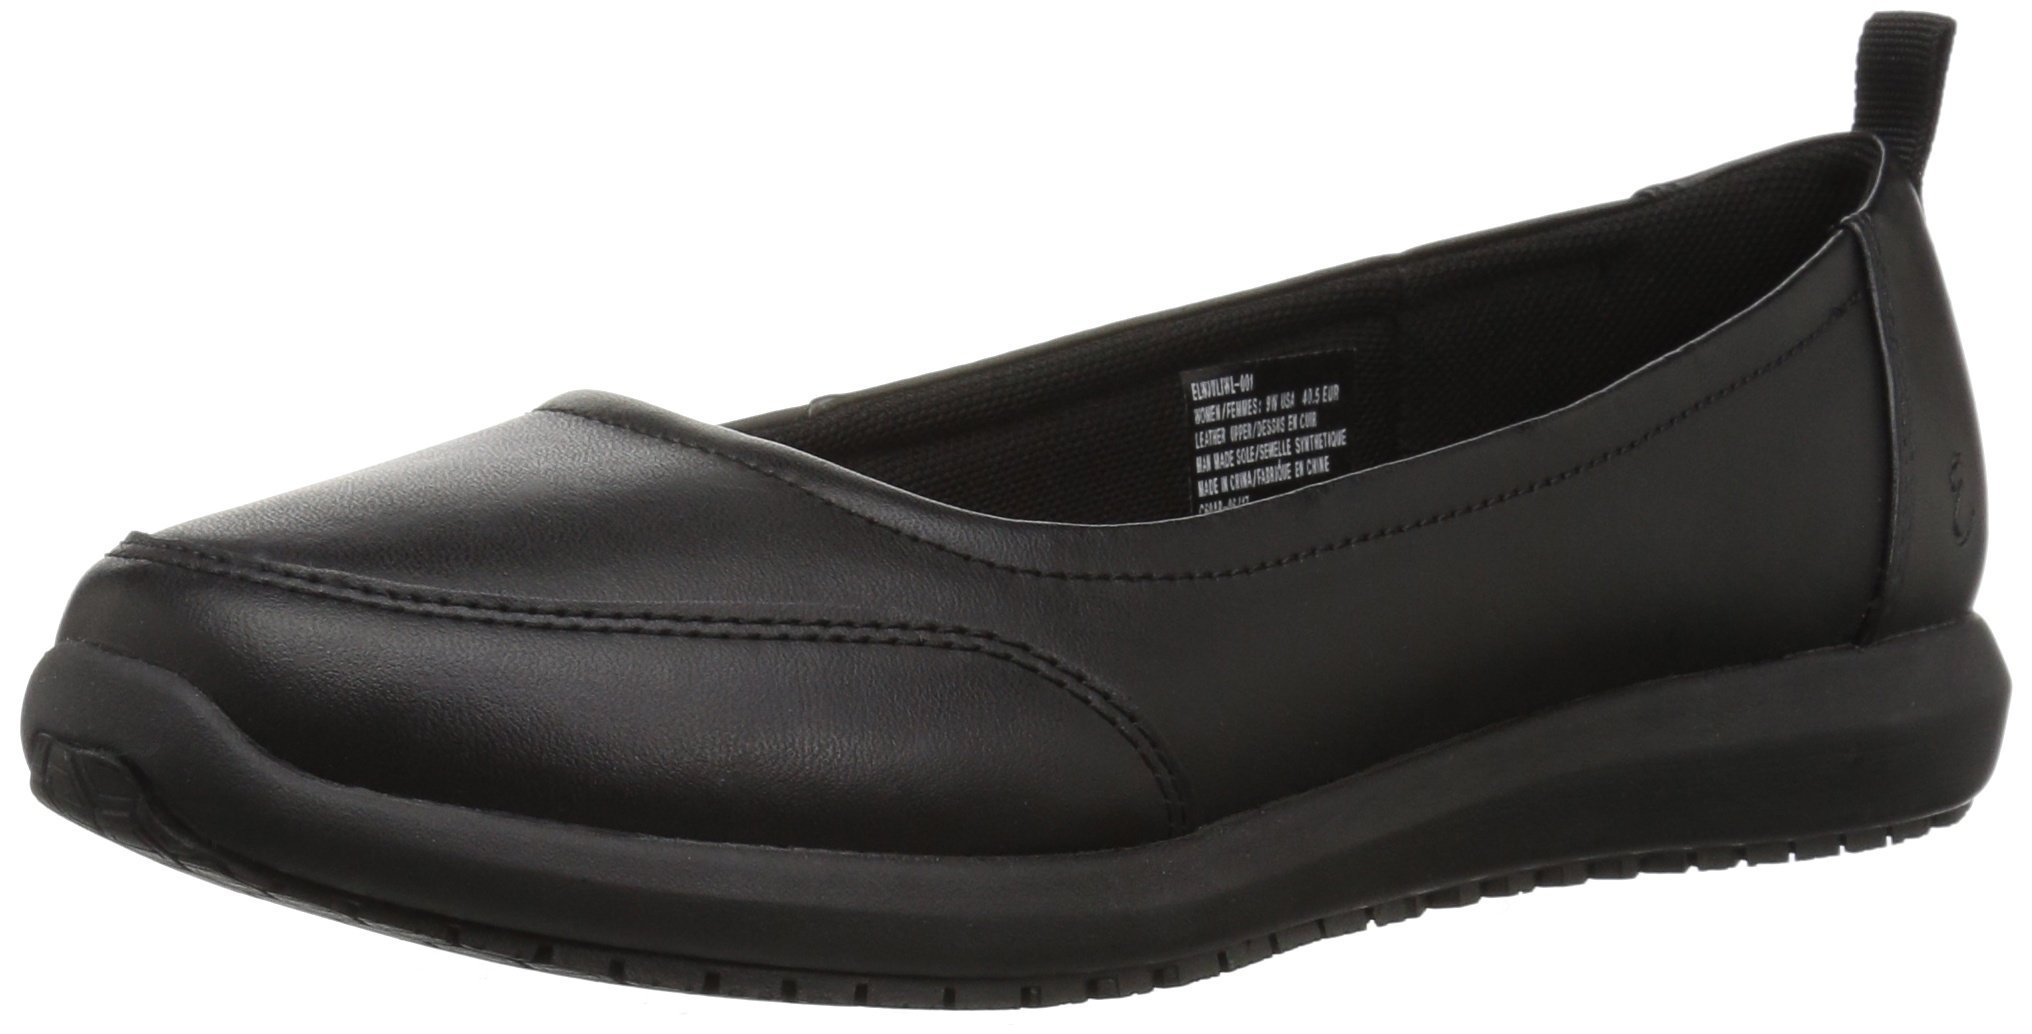 Emeril Lagasse Women's Julia Slip-Resistant Work Shoe, Black, 8 W US